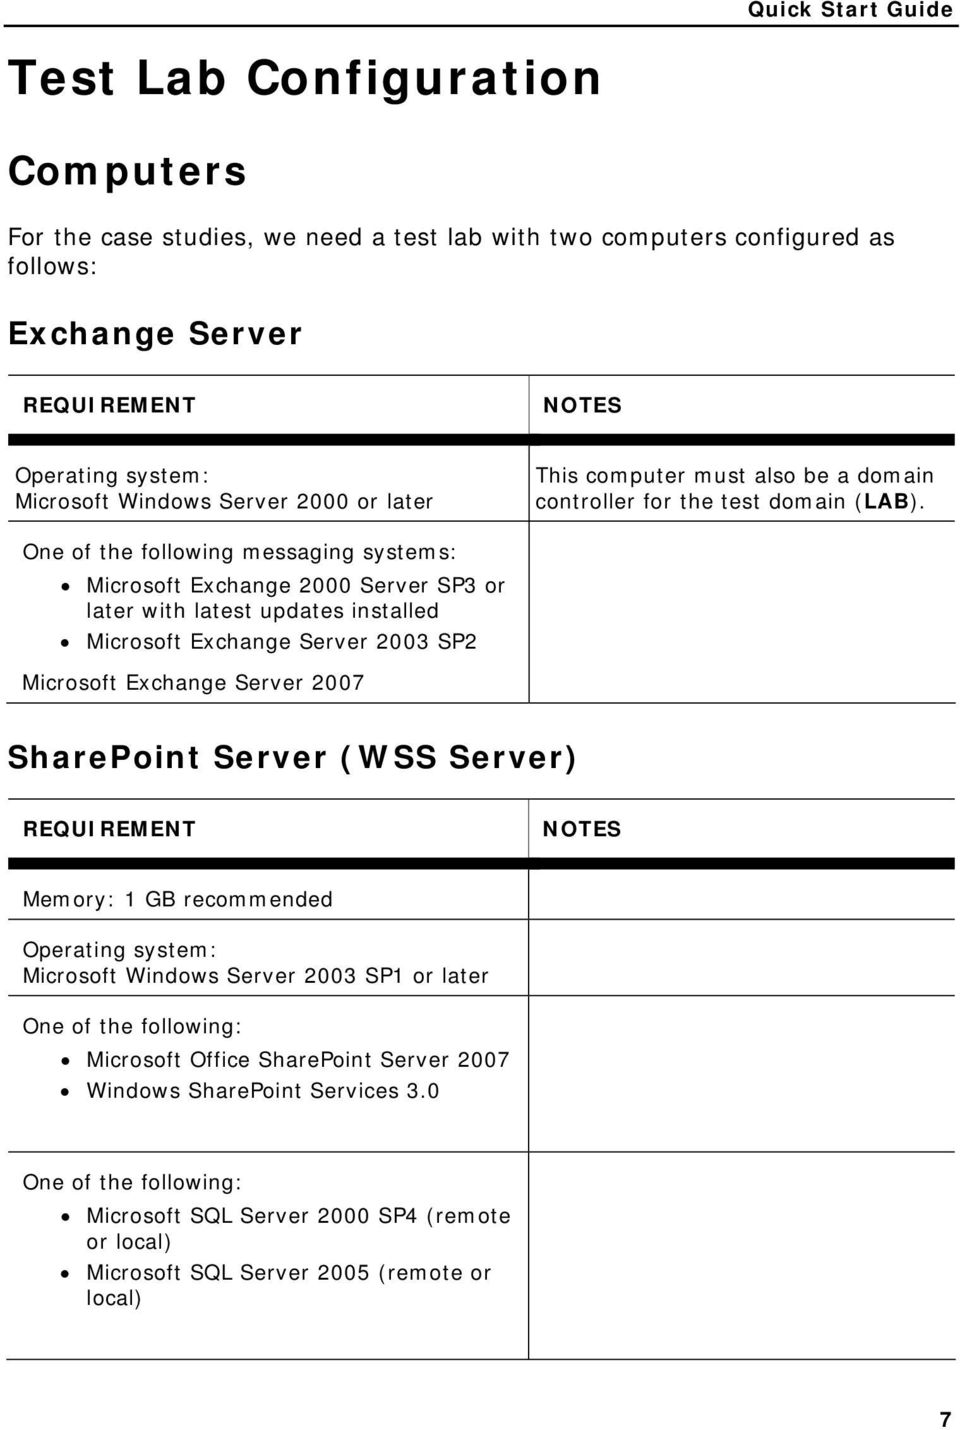 One of the following messaging systems: Microsoft Exchange 2000 Server SP3 or later with latest updates installed Microsoft Exchange Server 2003 SP2 Microsoft Exchange Server 2007 SharePoint Server